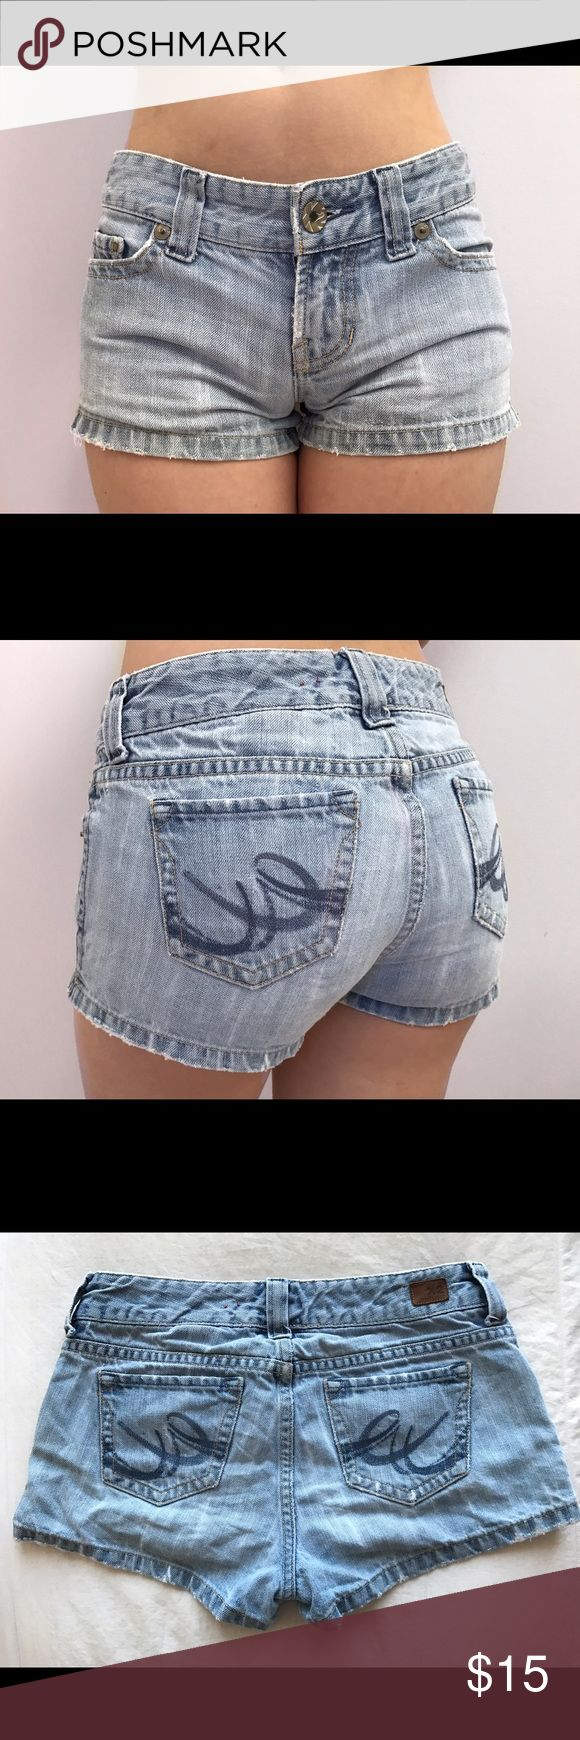 Express X2 Cute Jean Shorts A great addition to any closet, goes with everything! Worn a bit, there's a bit of fraying, but it's barely noticeable. There are five pockets - 3 in the front, 2 in the back Express Shorts Jean Shorts